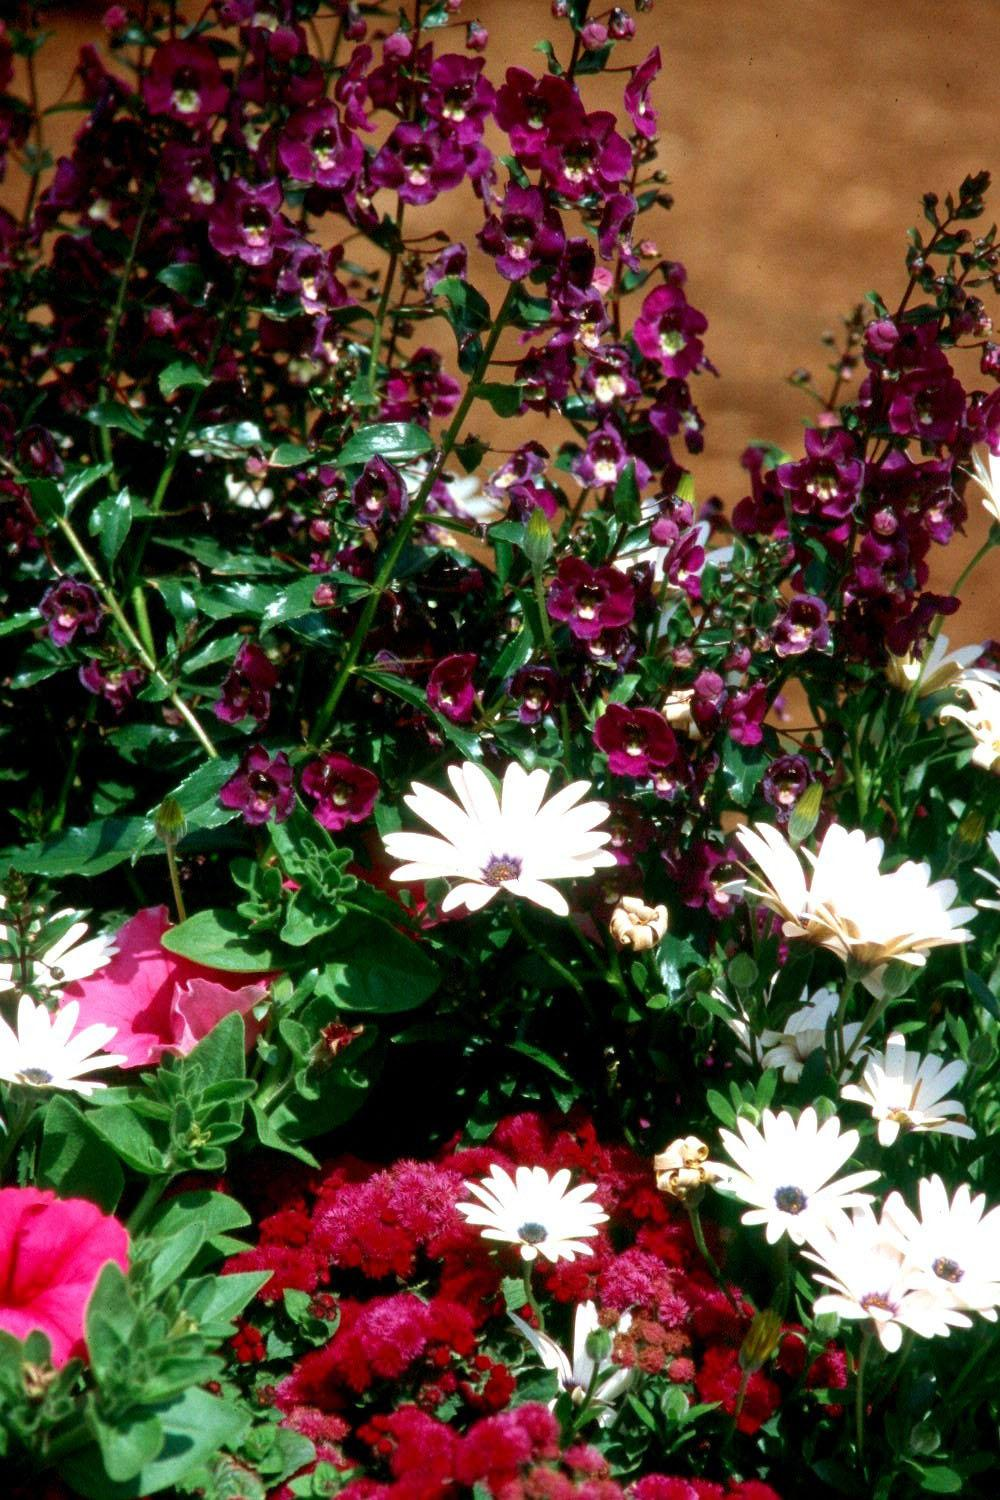 The tall Angel Face angelonia combines wonderfully with other flowers like these purple ageratums and white osteospermum.